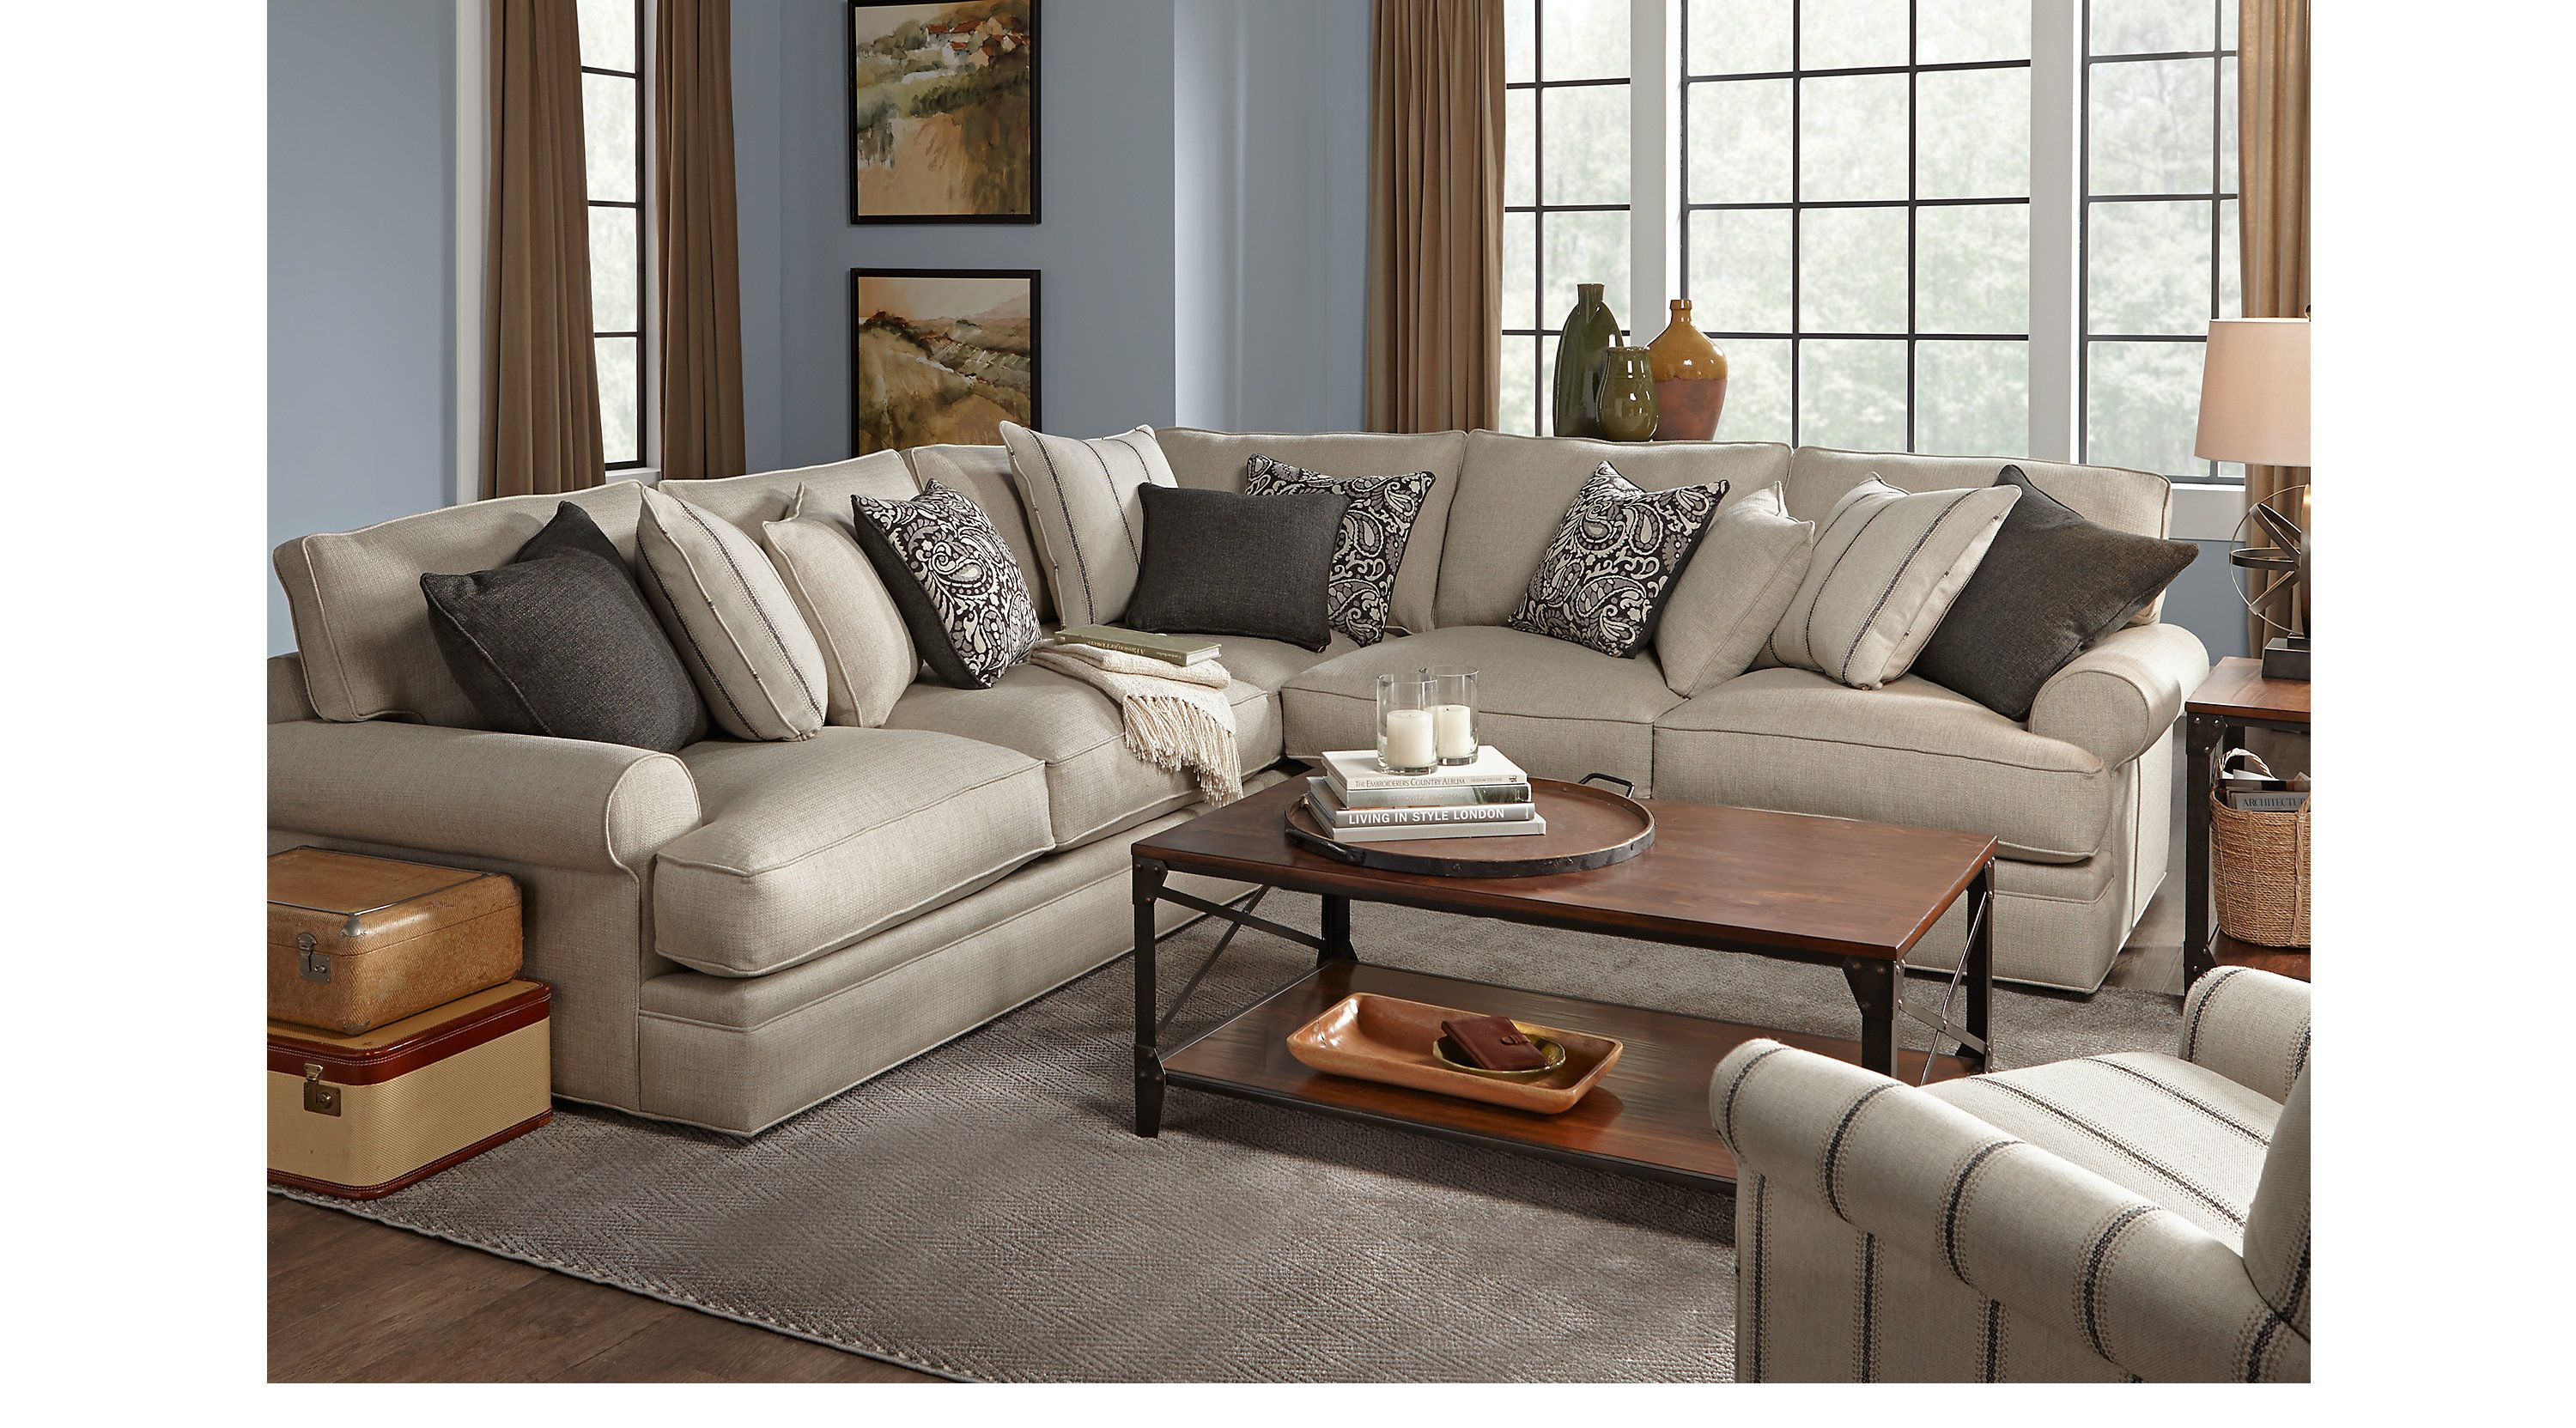 2 388 00 Lincoln Square Beige 6 Pc Sectional Living Room Contemporary Textured Living Room Sectional Living Room Sets Rooms To Go Furniture